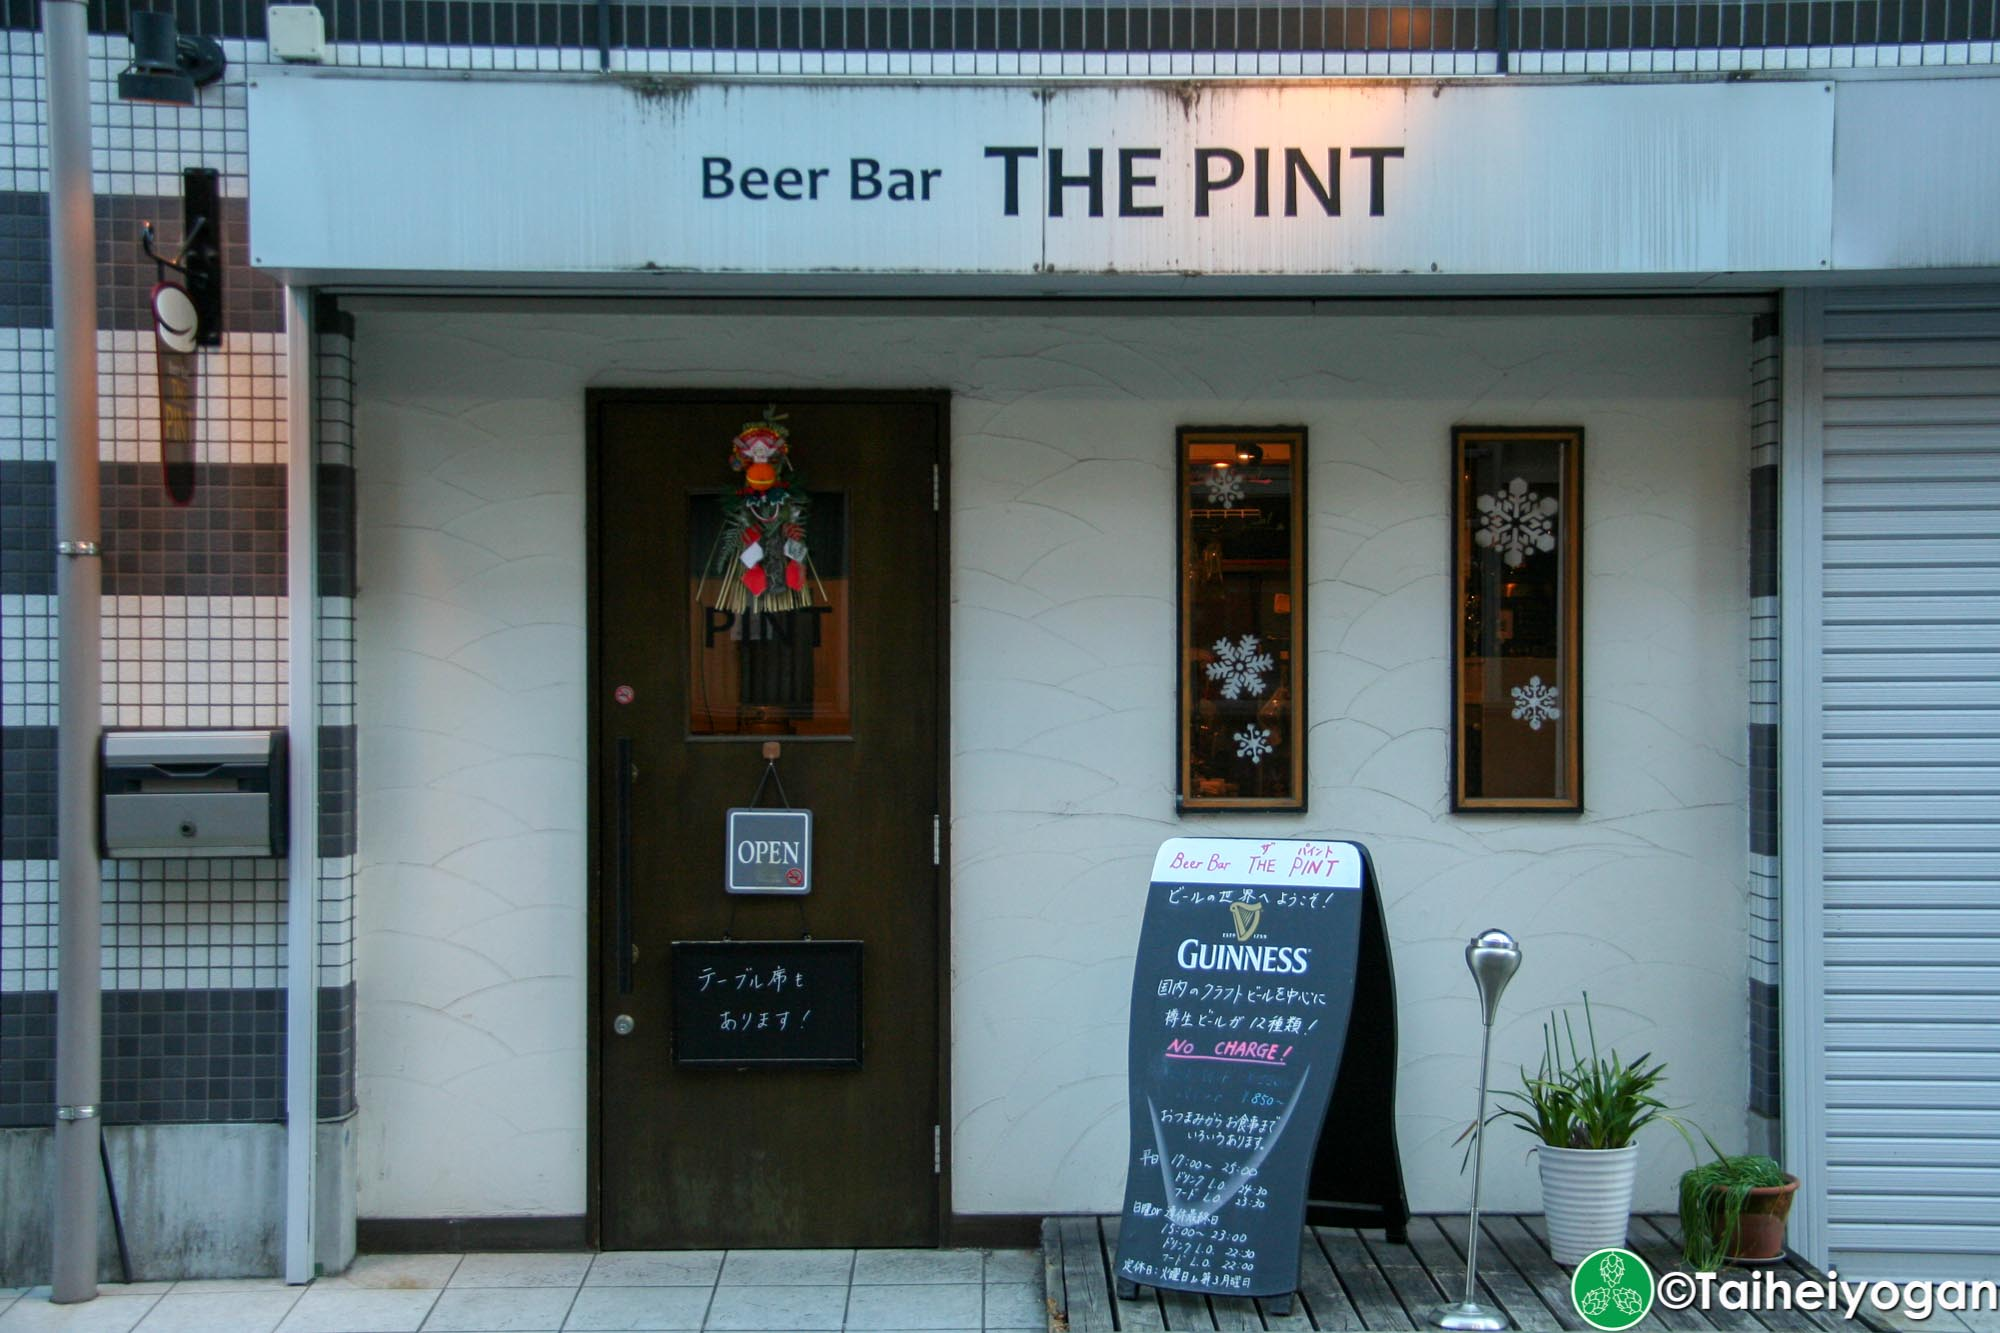 Beer Bar the Pint - Entrance